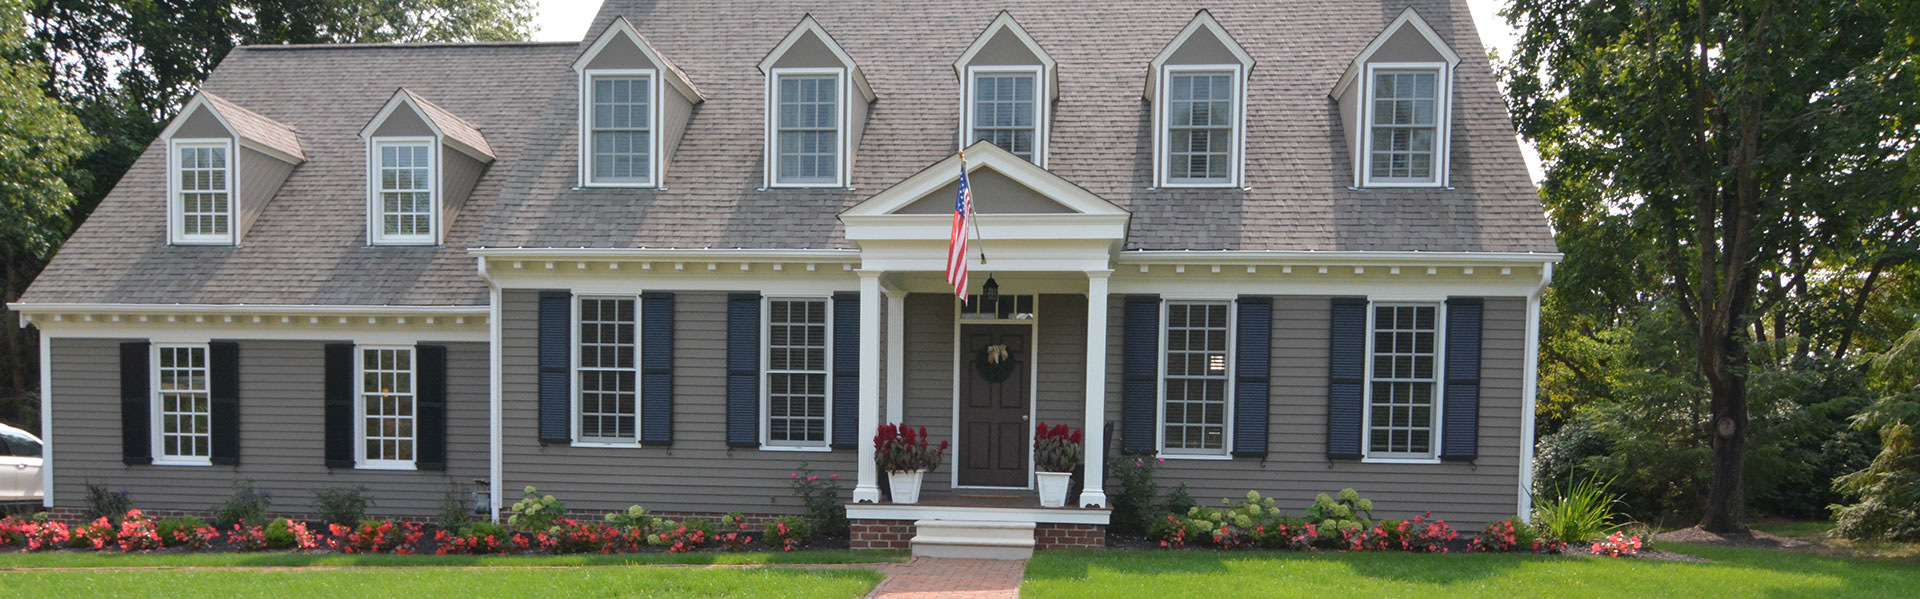 Exterior-House-Painting-Services